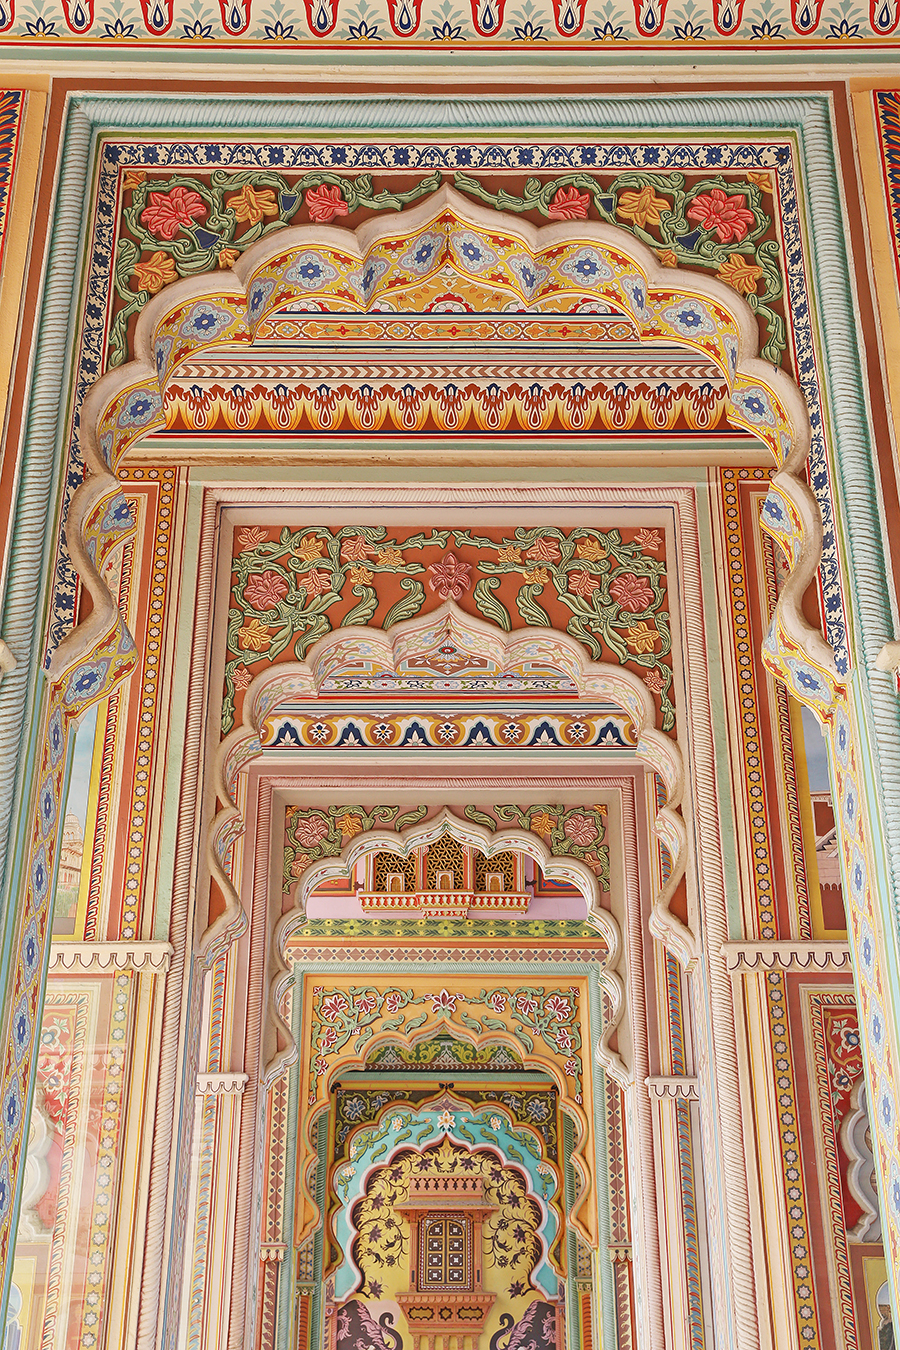 Jaipur, India: 24 Hours in the Pink City - What & Where to See, Stay, Eat, & Do